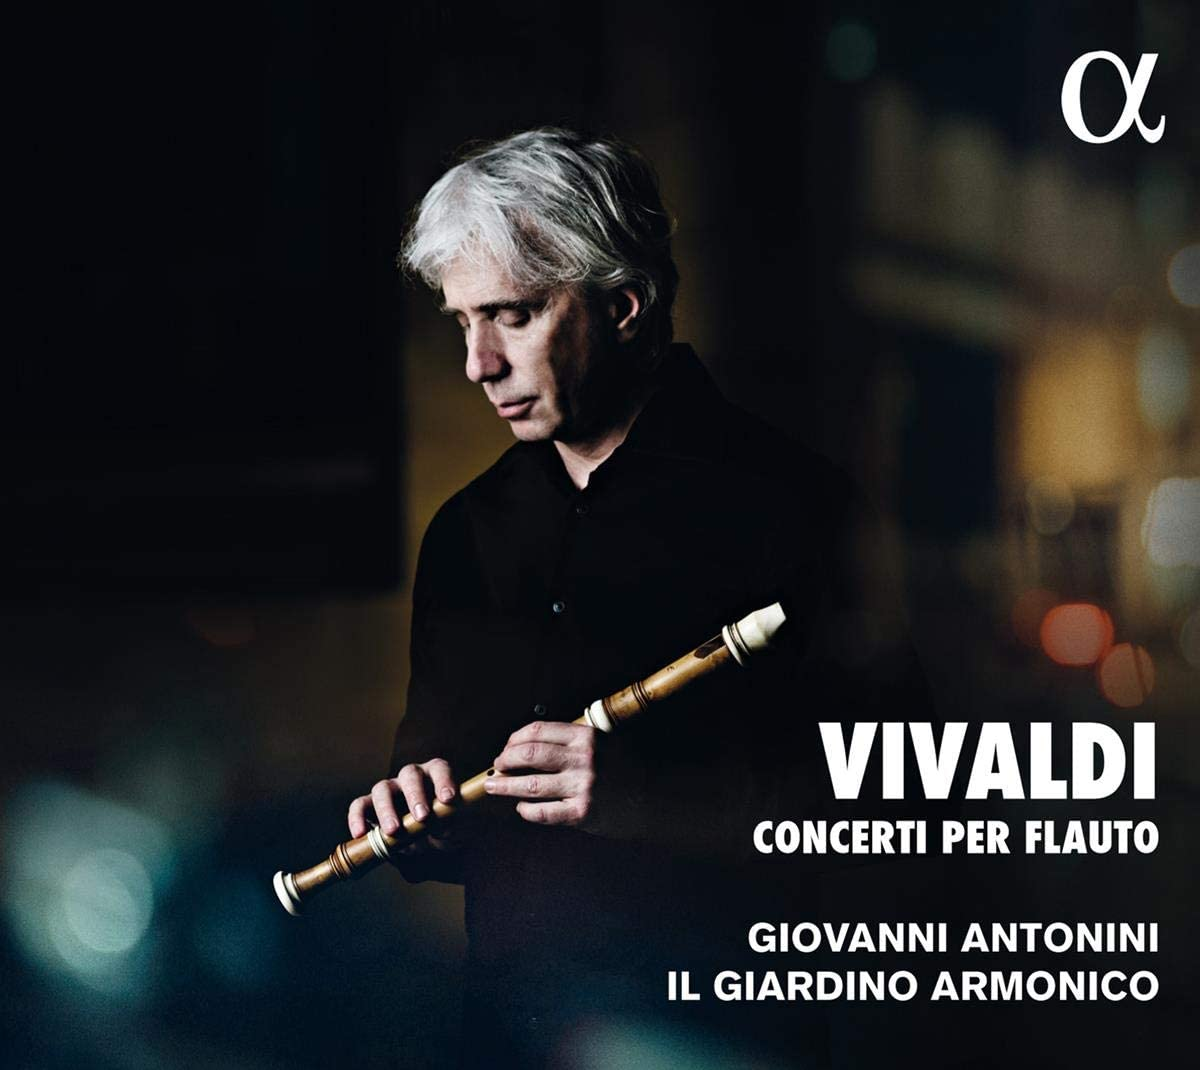 Review of VIVALDI Concerti per flauto (Giovanni Antonini)